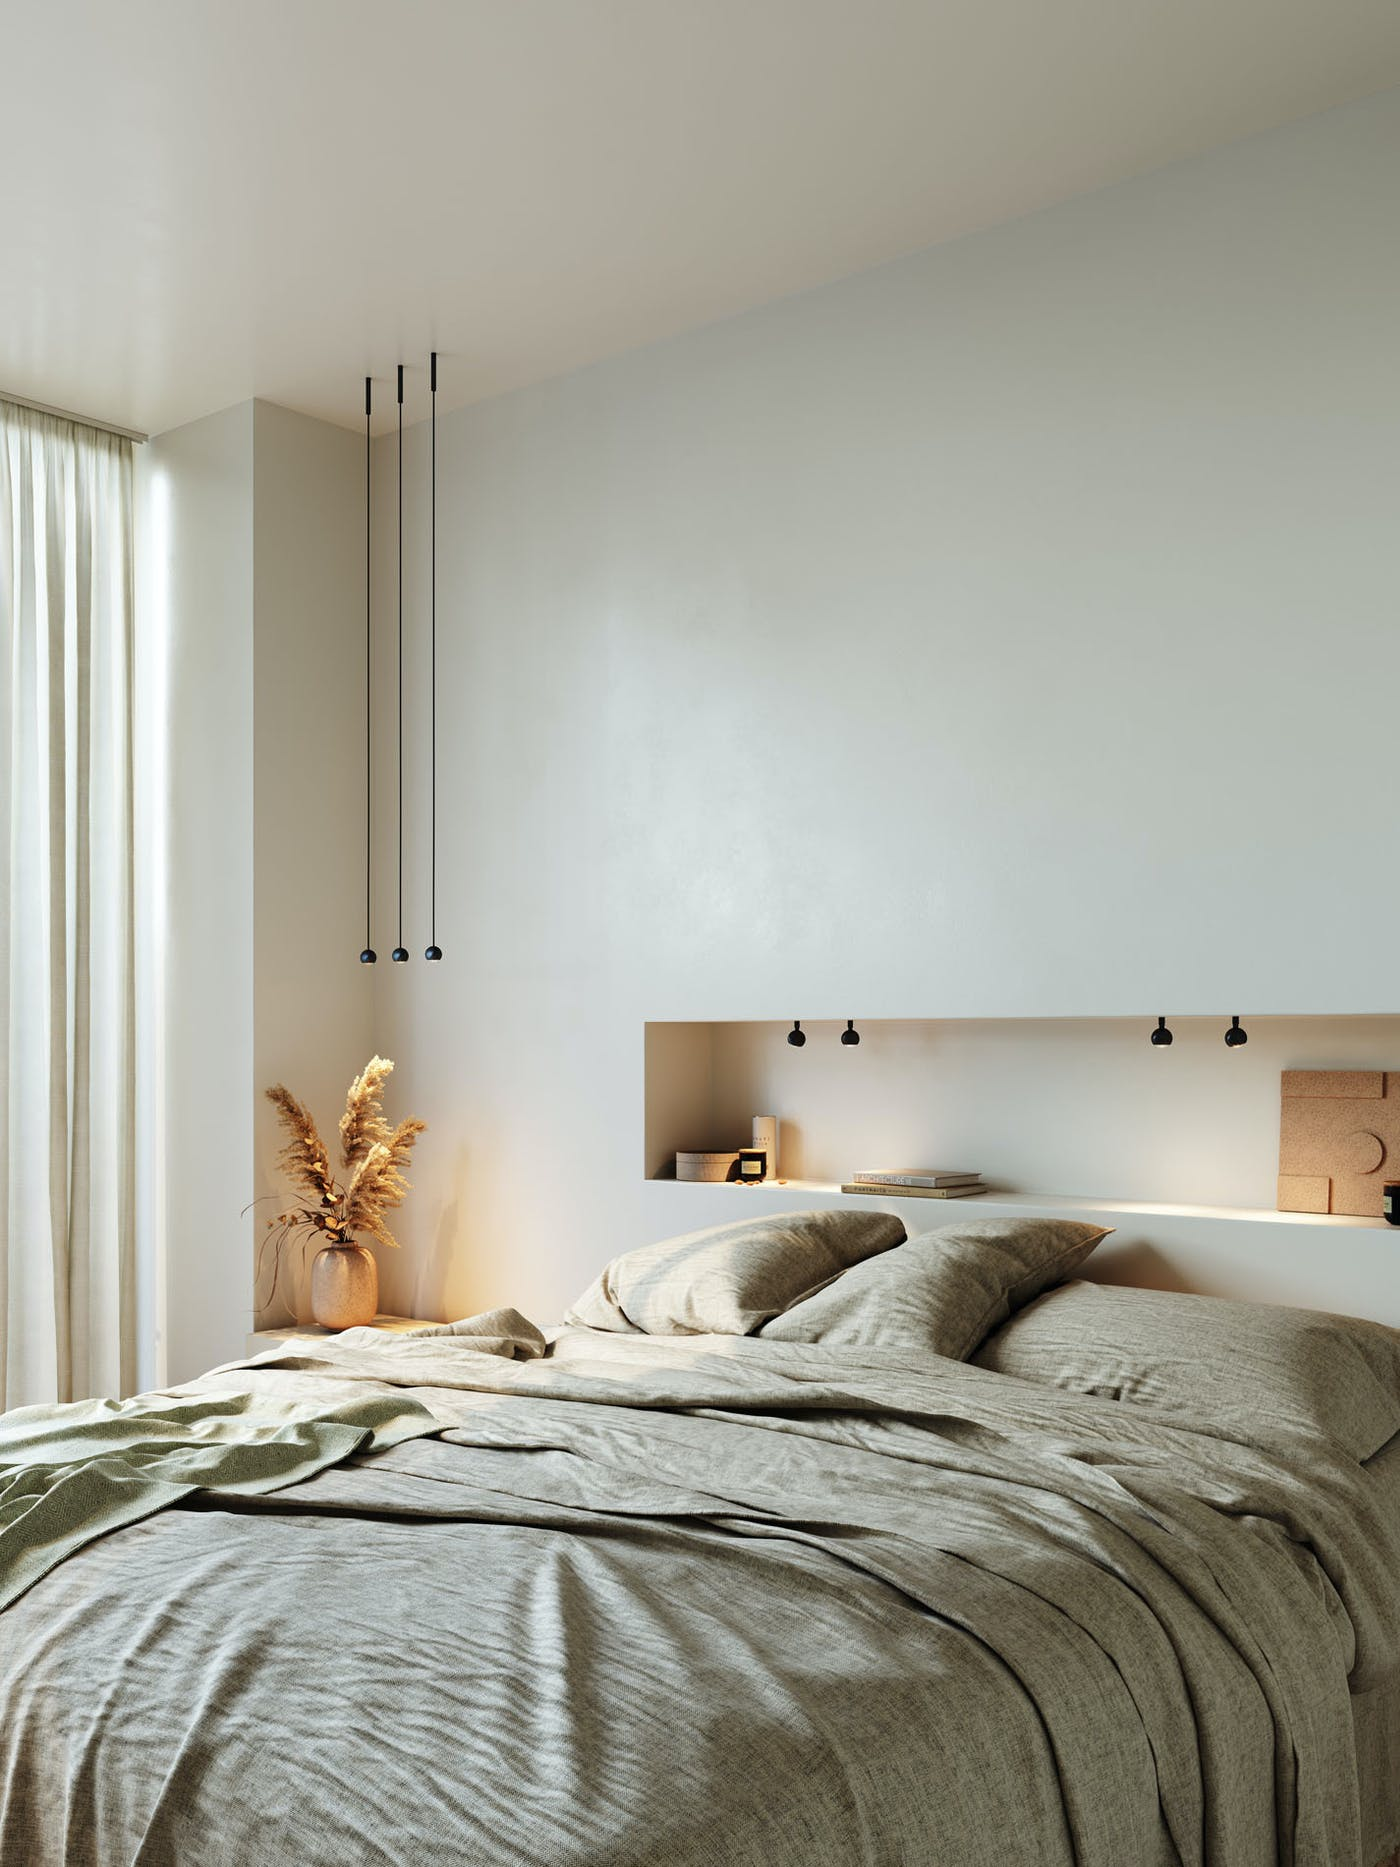 DE BERLIN PRIVATE RESIDENCE MODUPOINT RECESSED MARBULITO